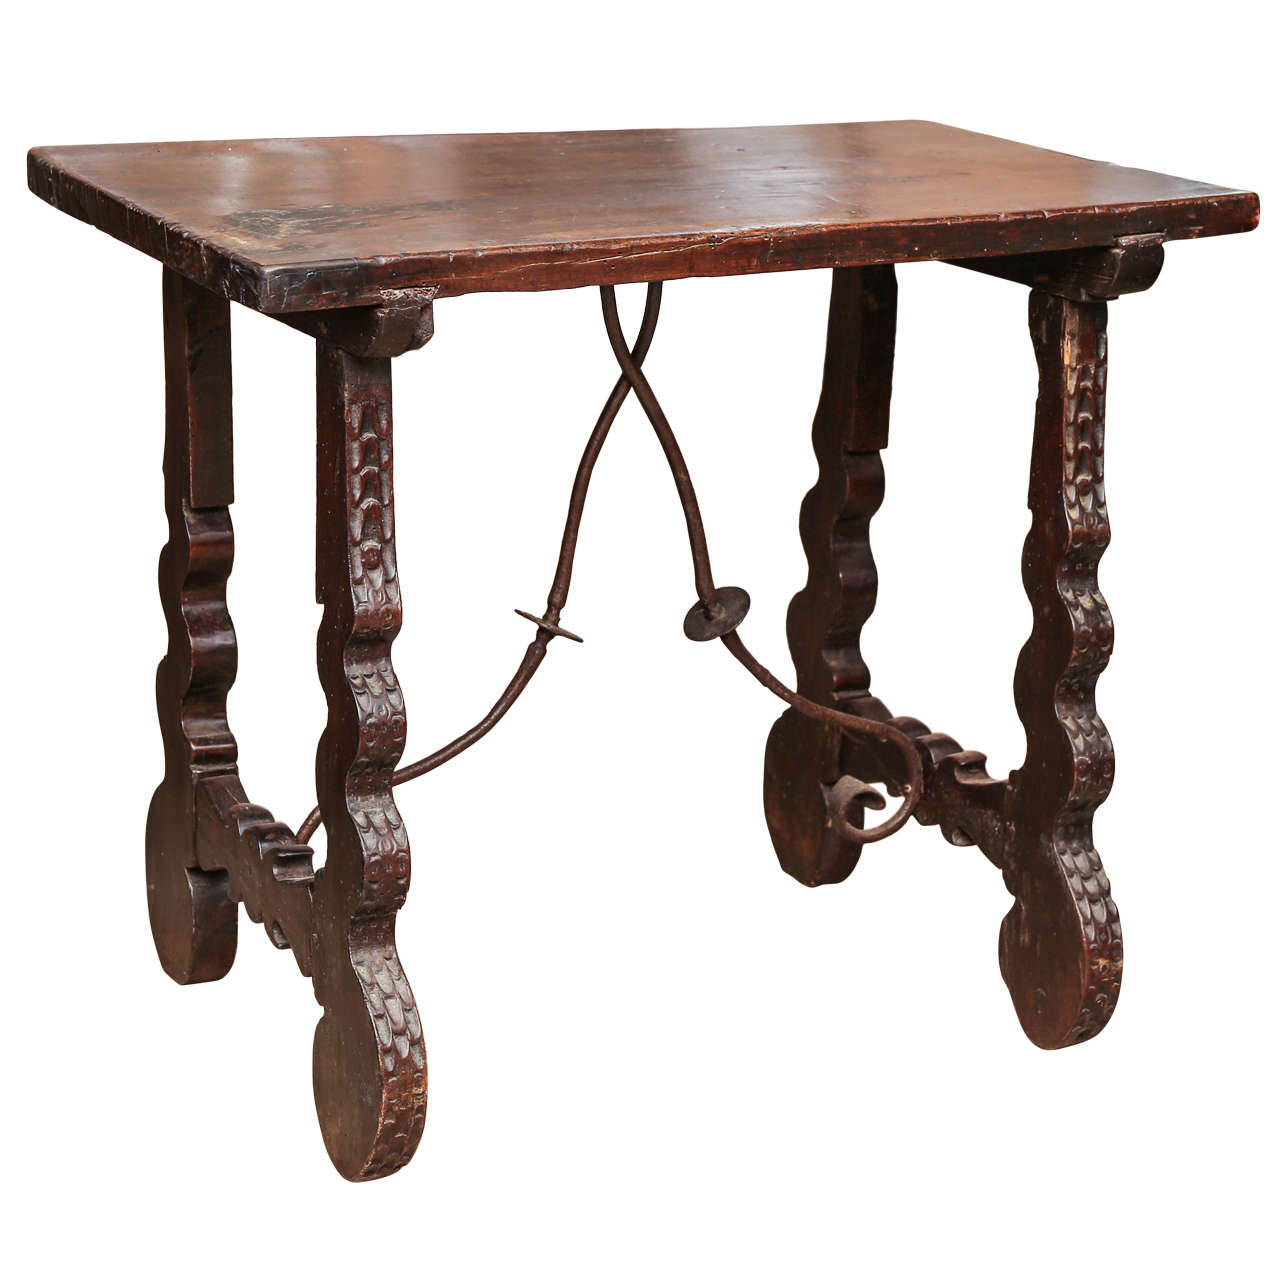 Early 19th century spanish side table at 1stdibs for Table in spanish